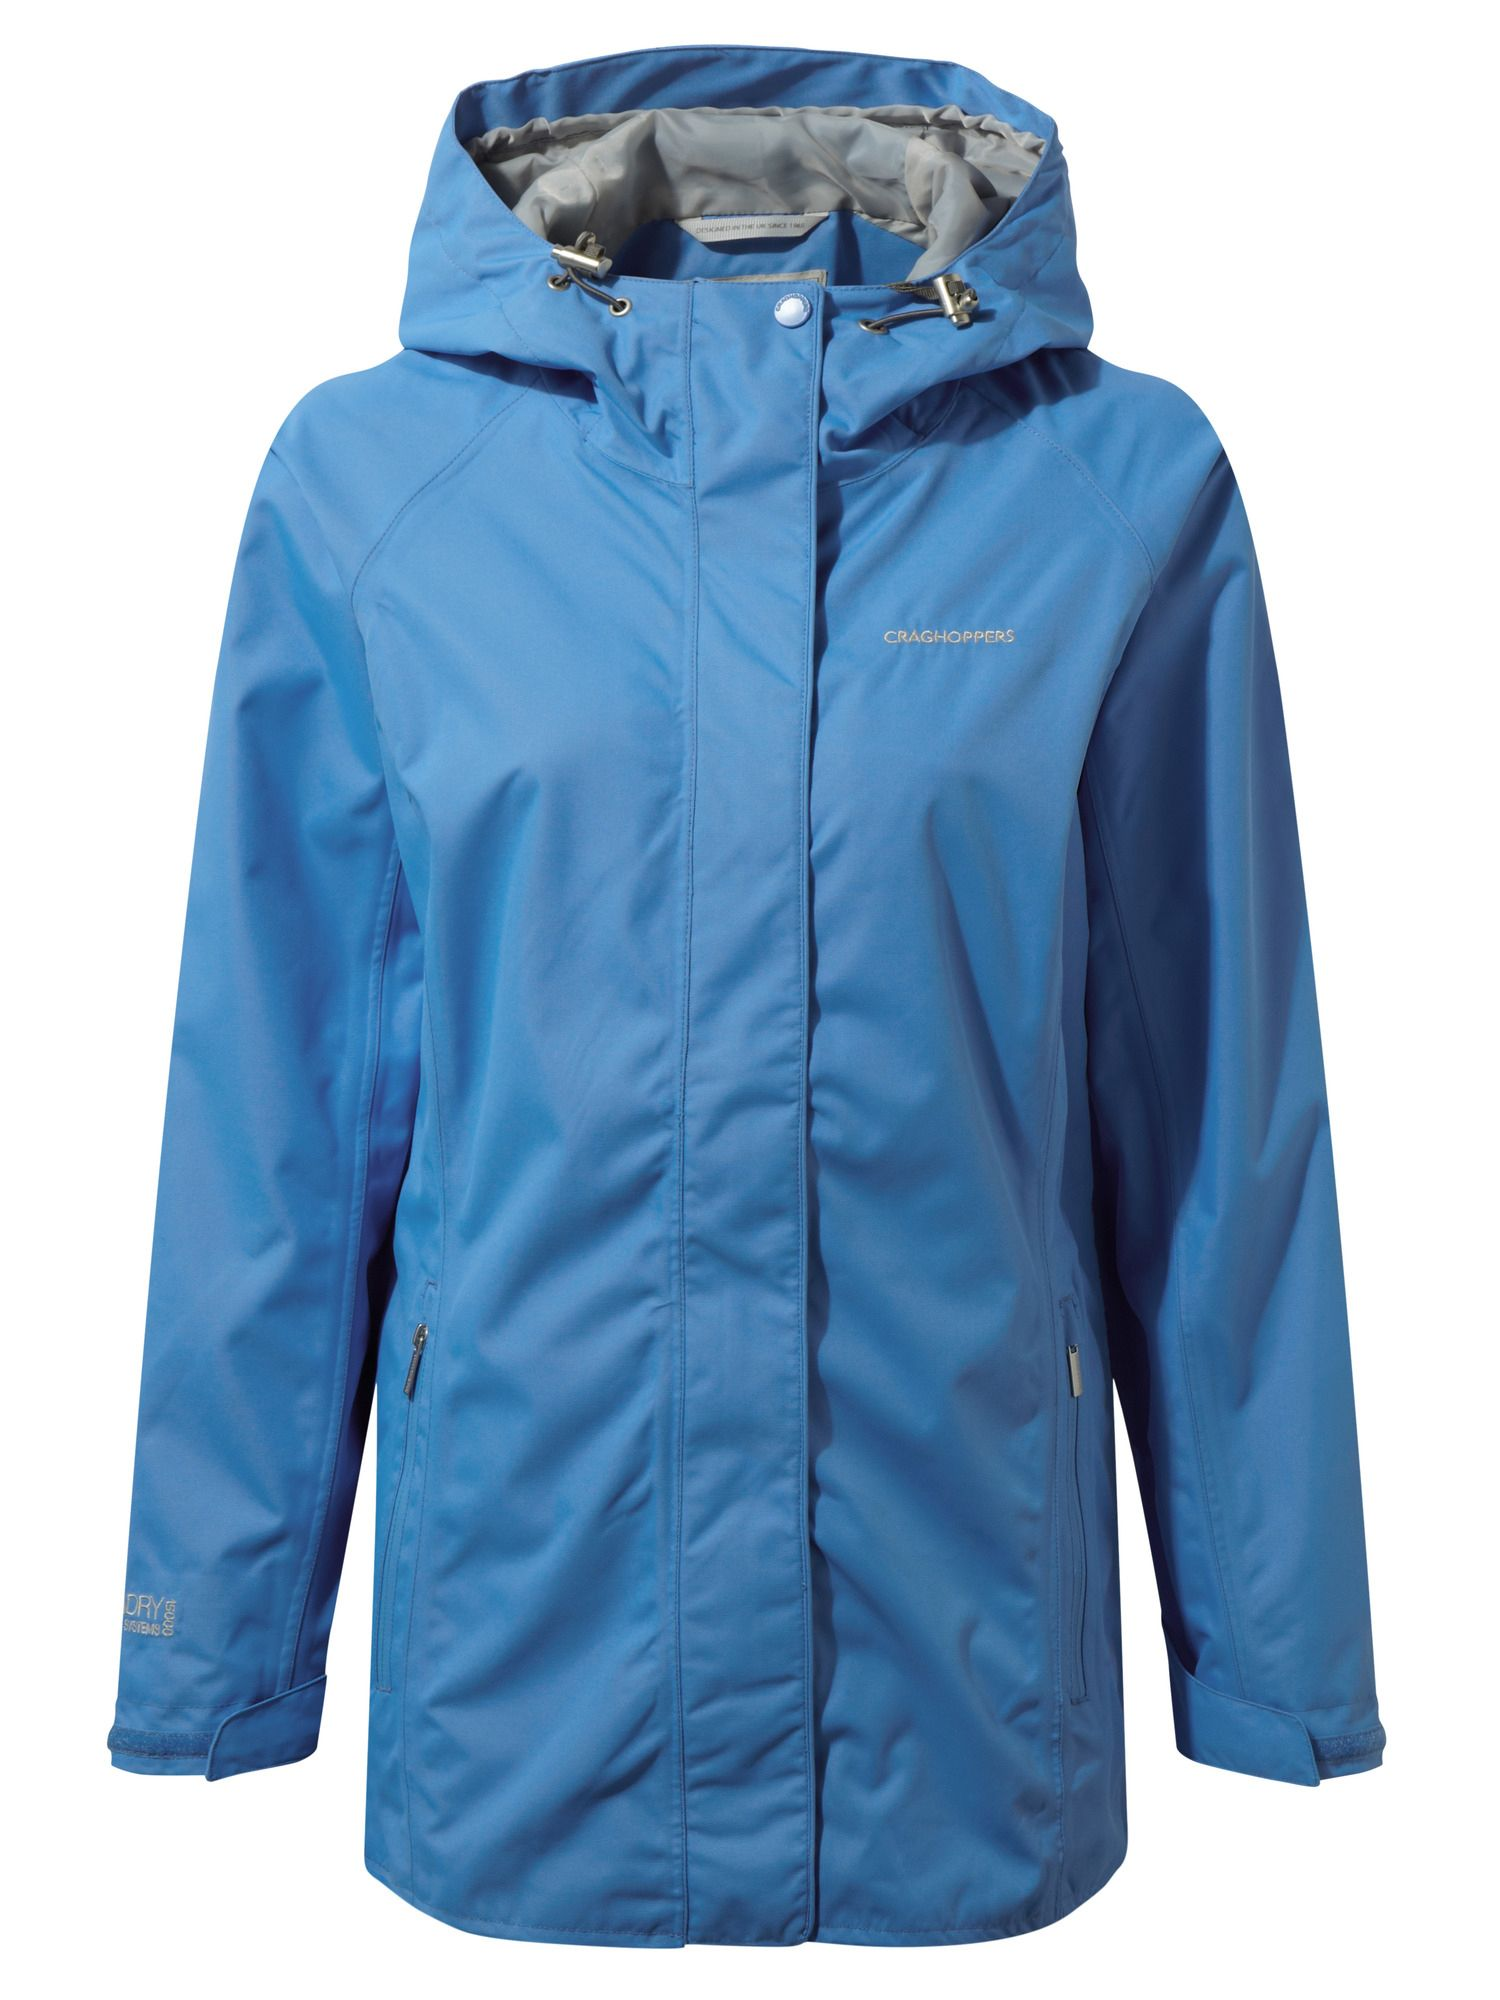 Craghoppers Madigan Classic Waterproof Jacket, Blue